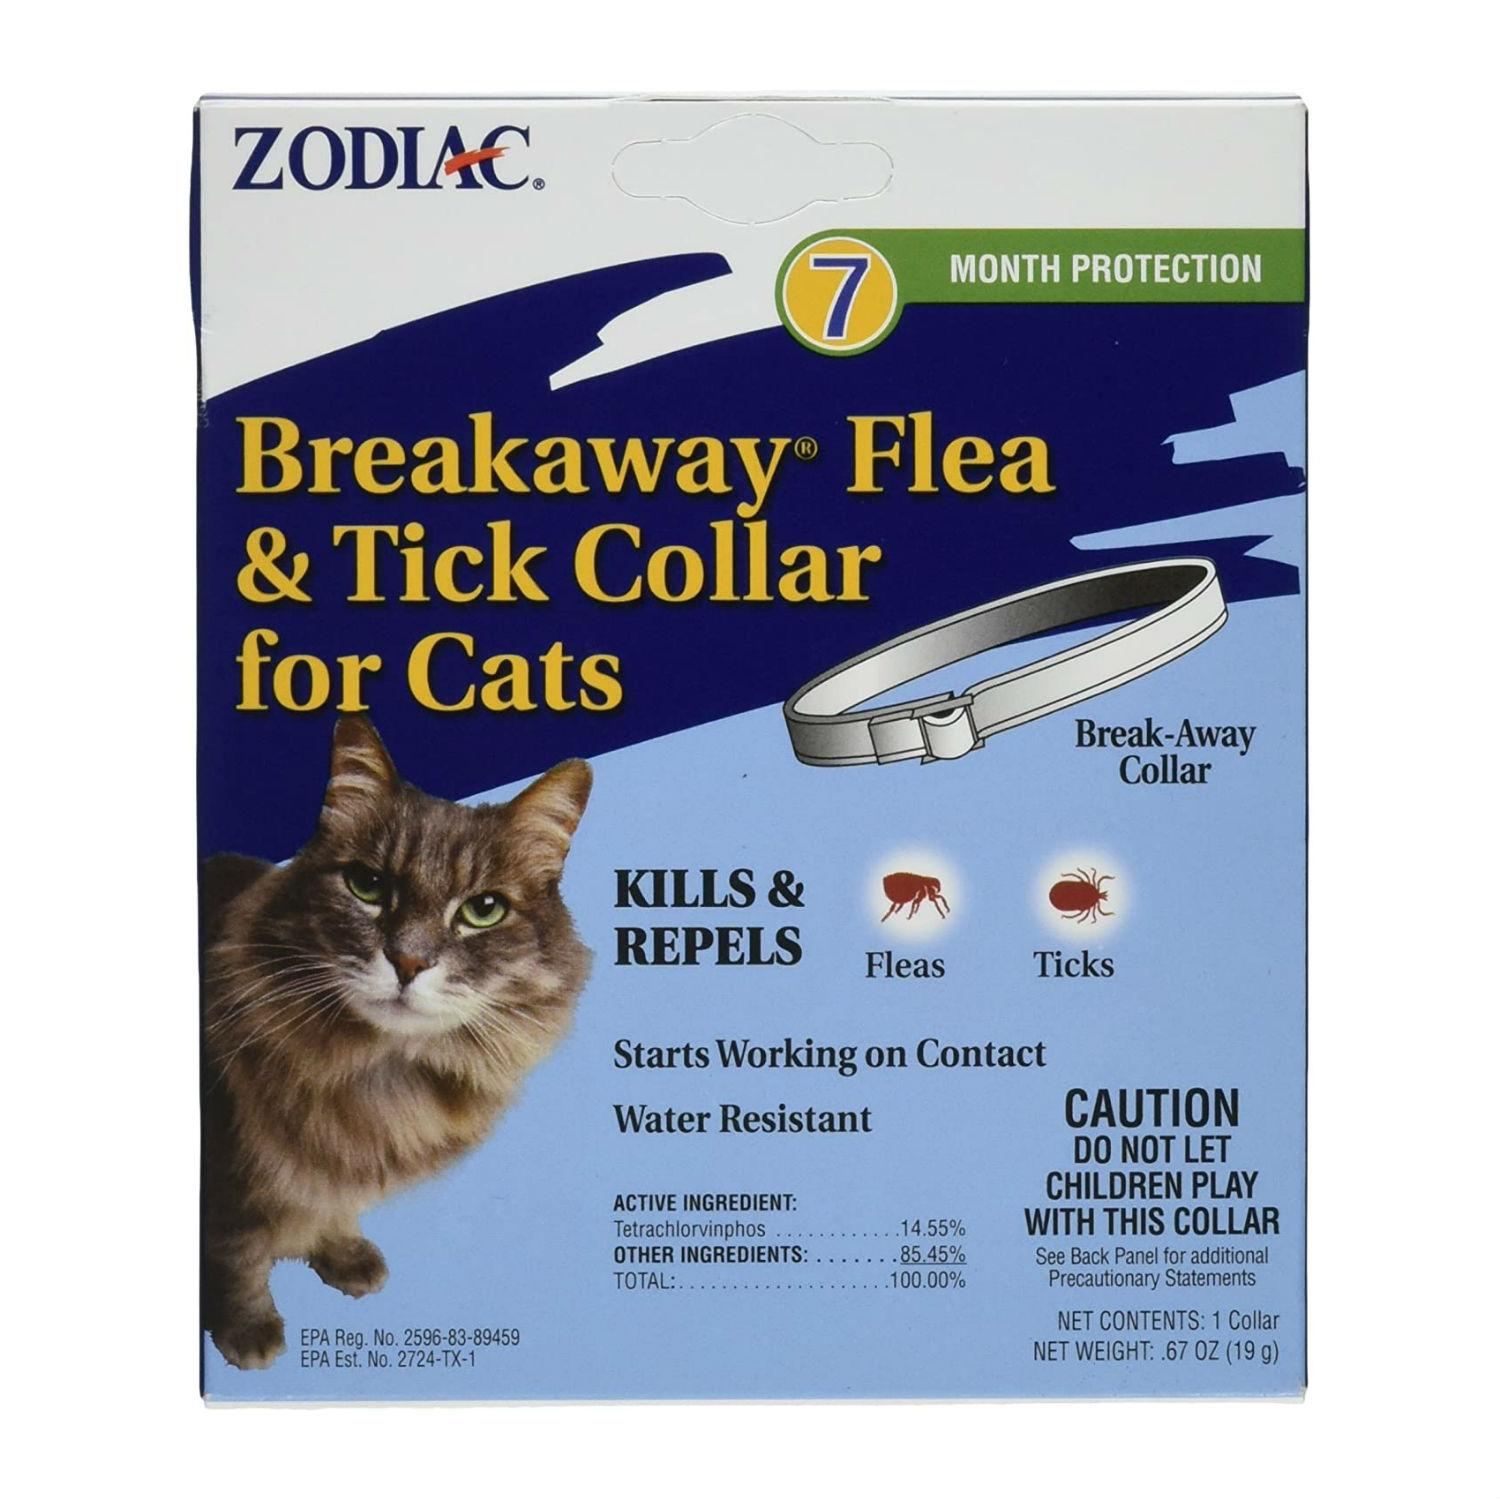 Zodiac Breakaway Flea & Tick Cat Collar - 7 Month Protection